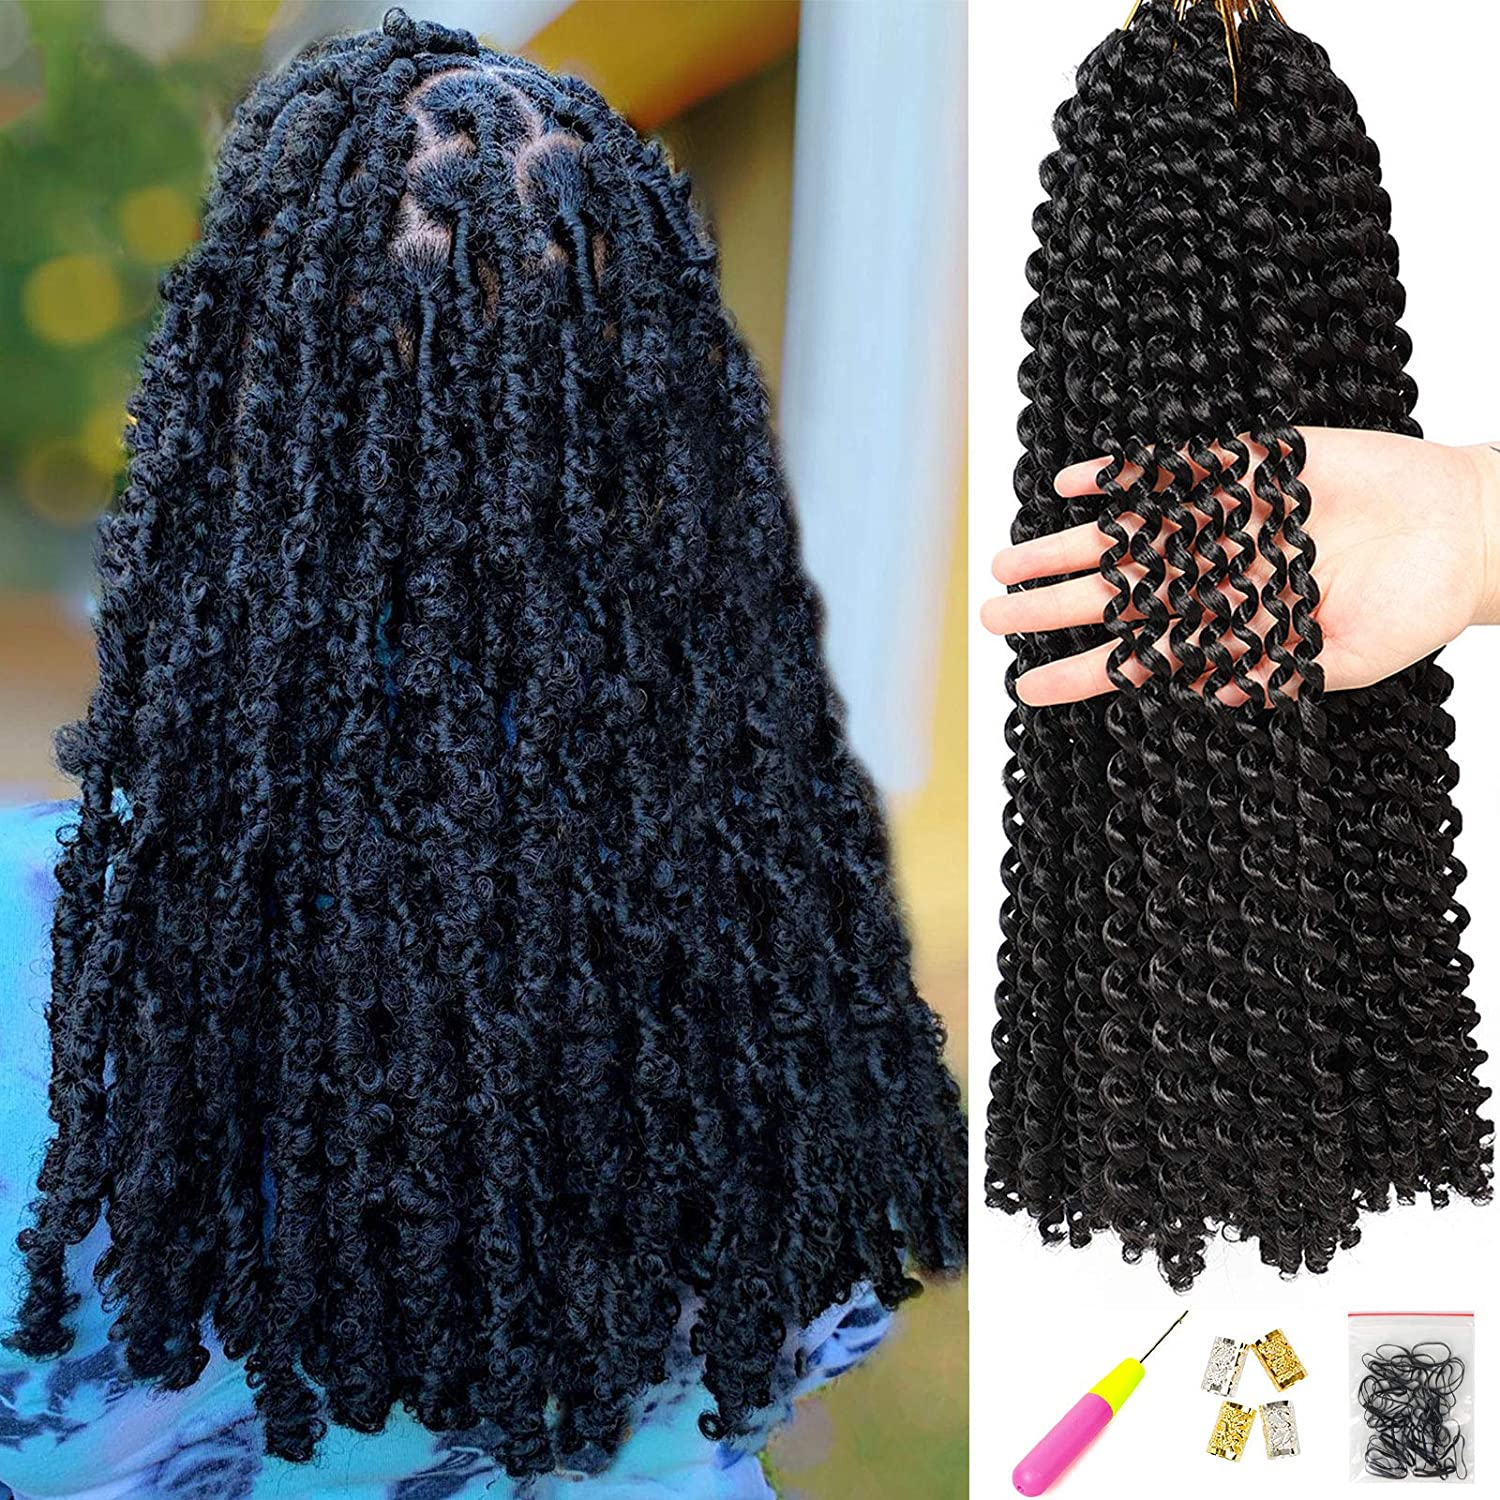 Amazon Com 6pcs Passion Twist Hair 18 Inch Braiding Water Wave Crochet Hair For Disstressed Butterfly Locs Crochet Hair Bohemian Braids Passion Twist Crochet Braiding Hair Extensions 1b Beauty